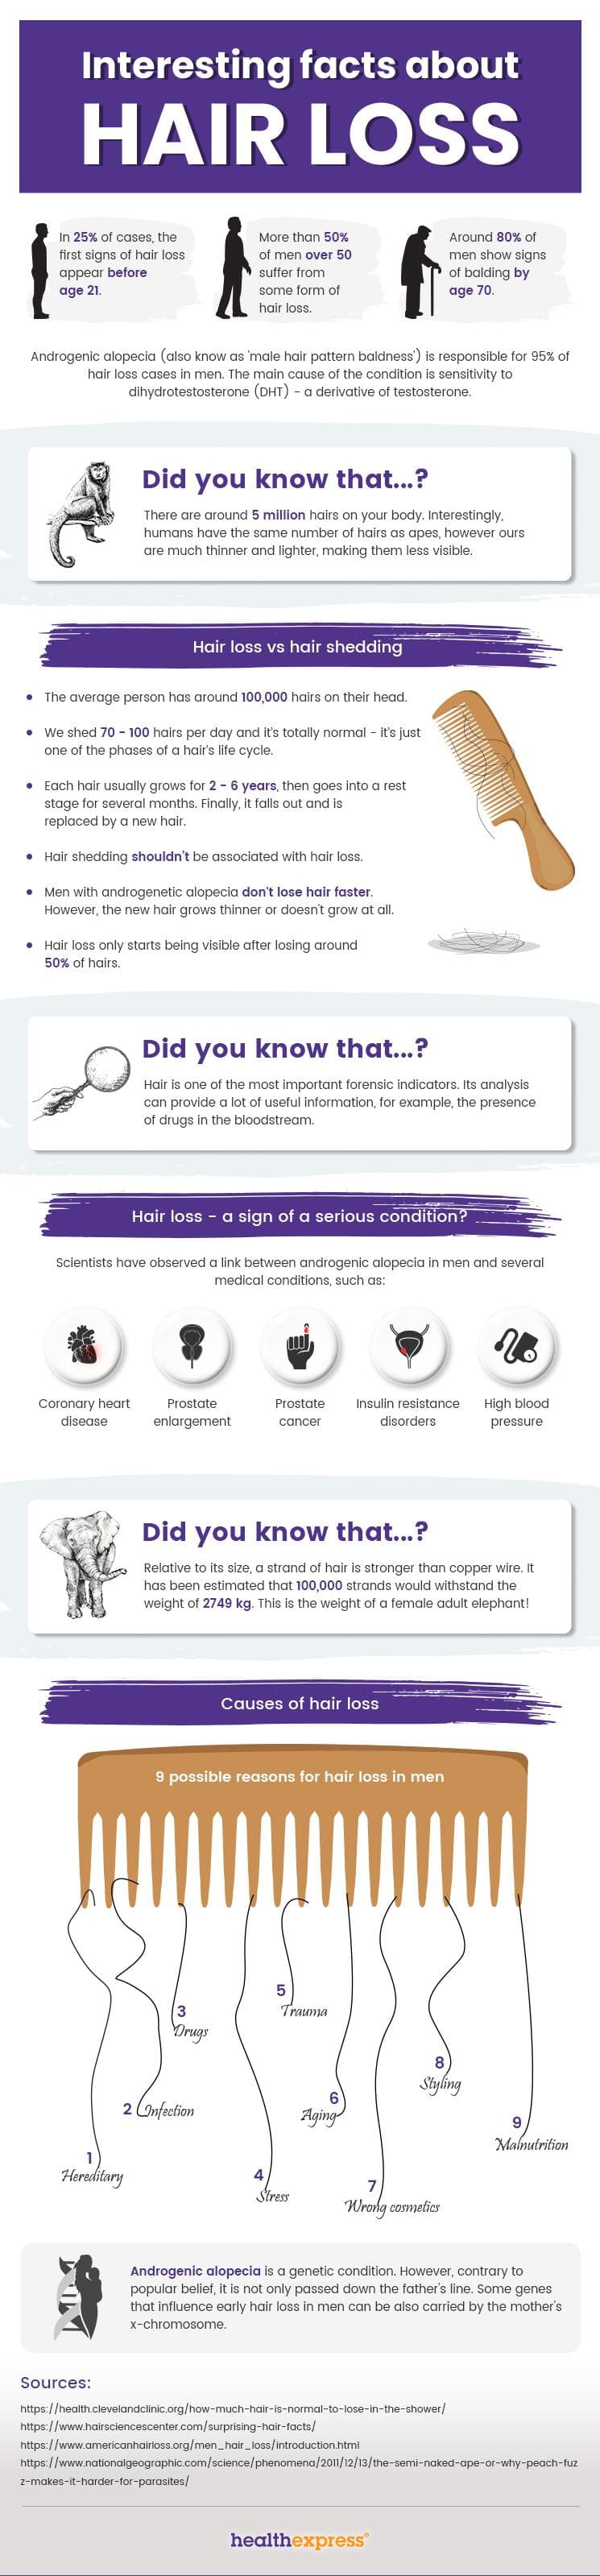 Interesting facts about hair loss